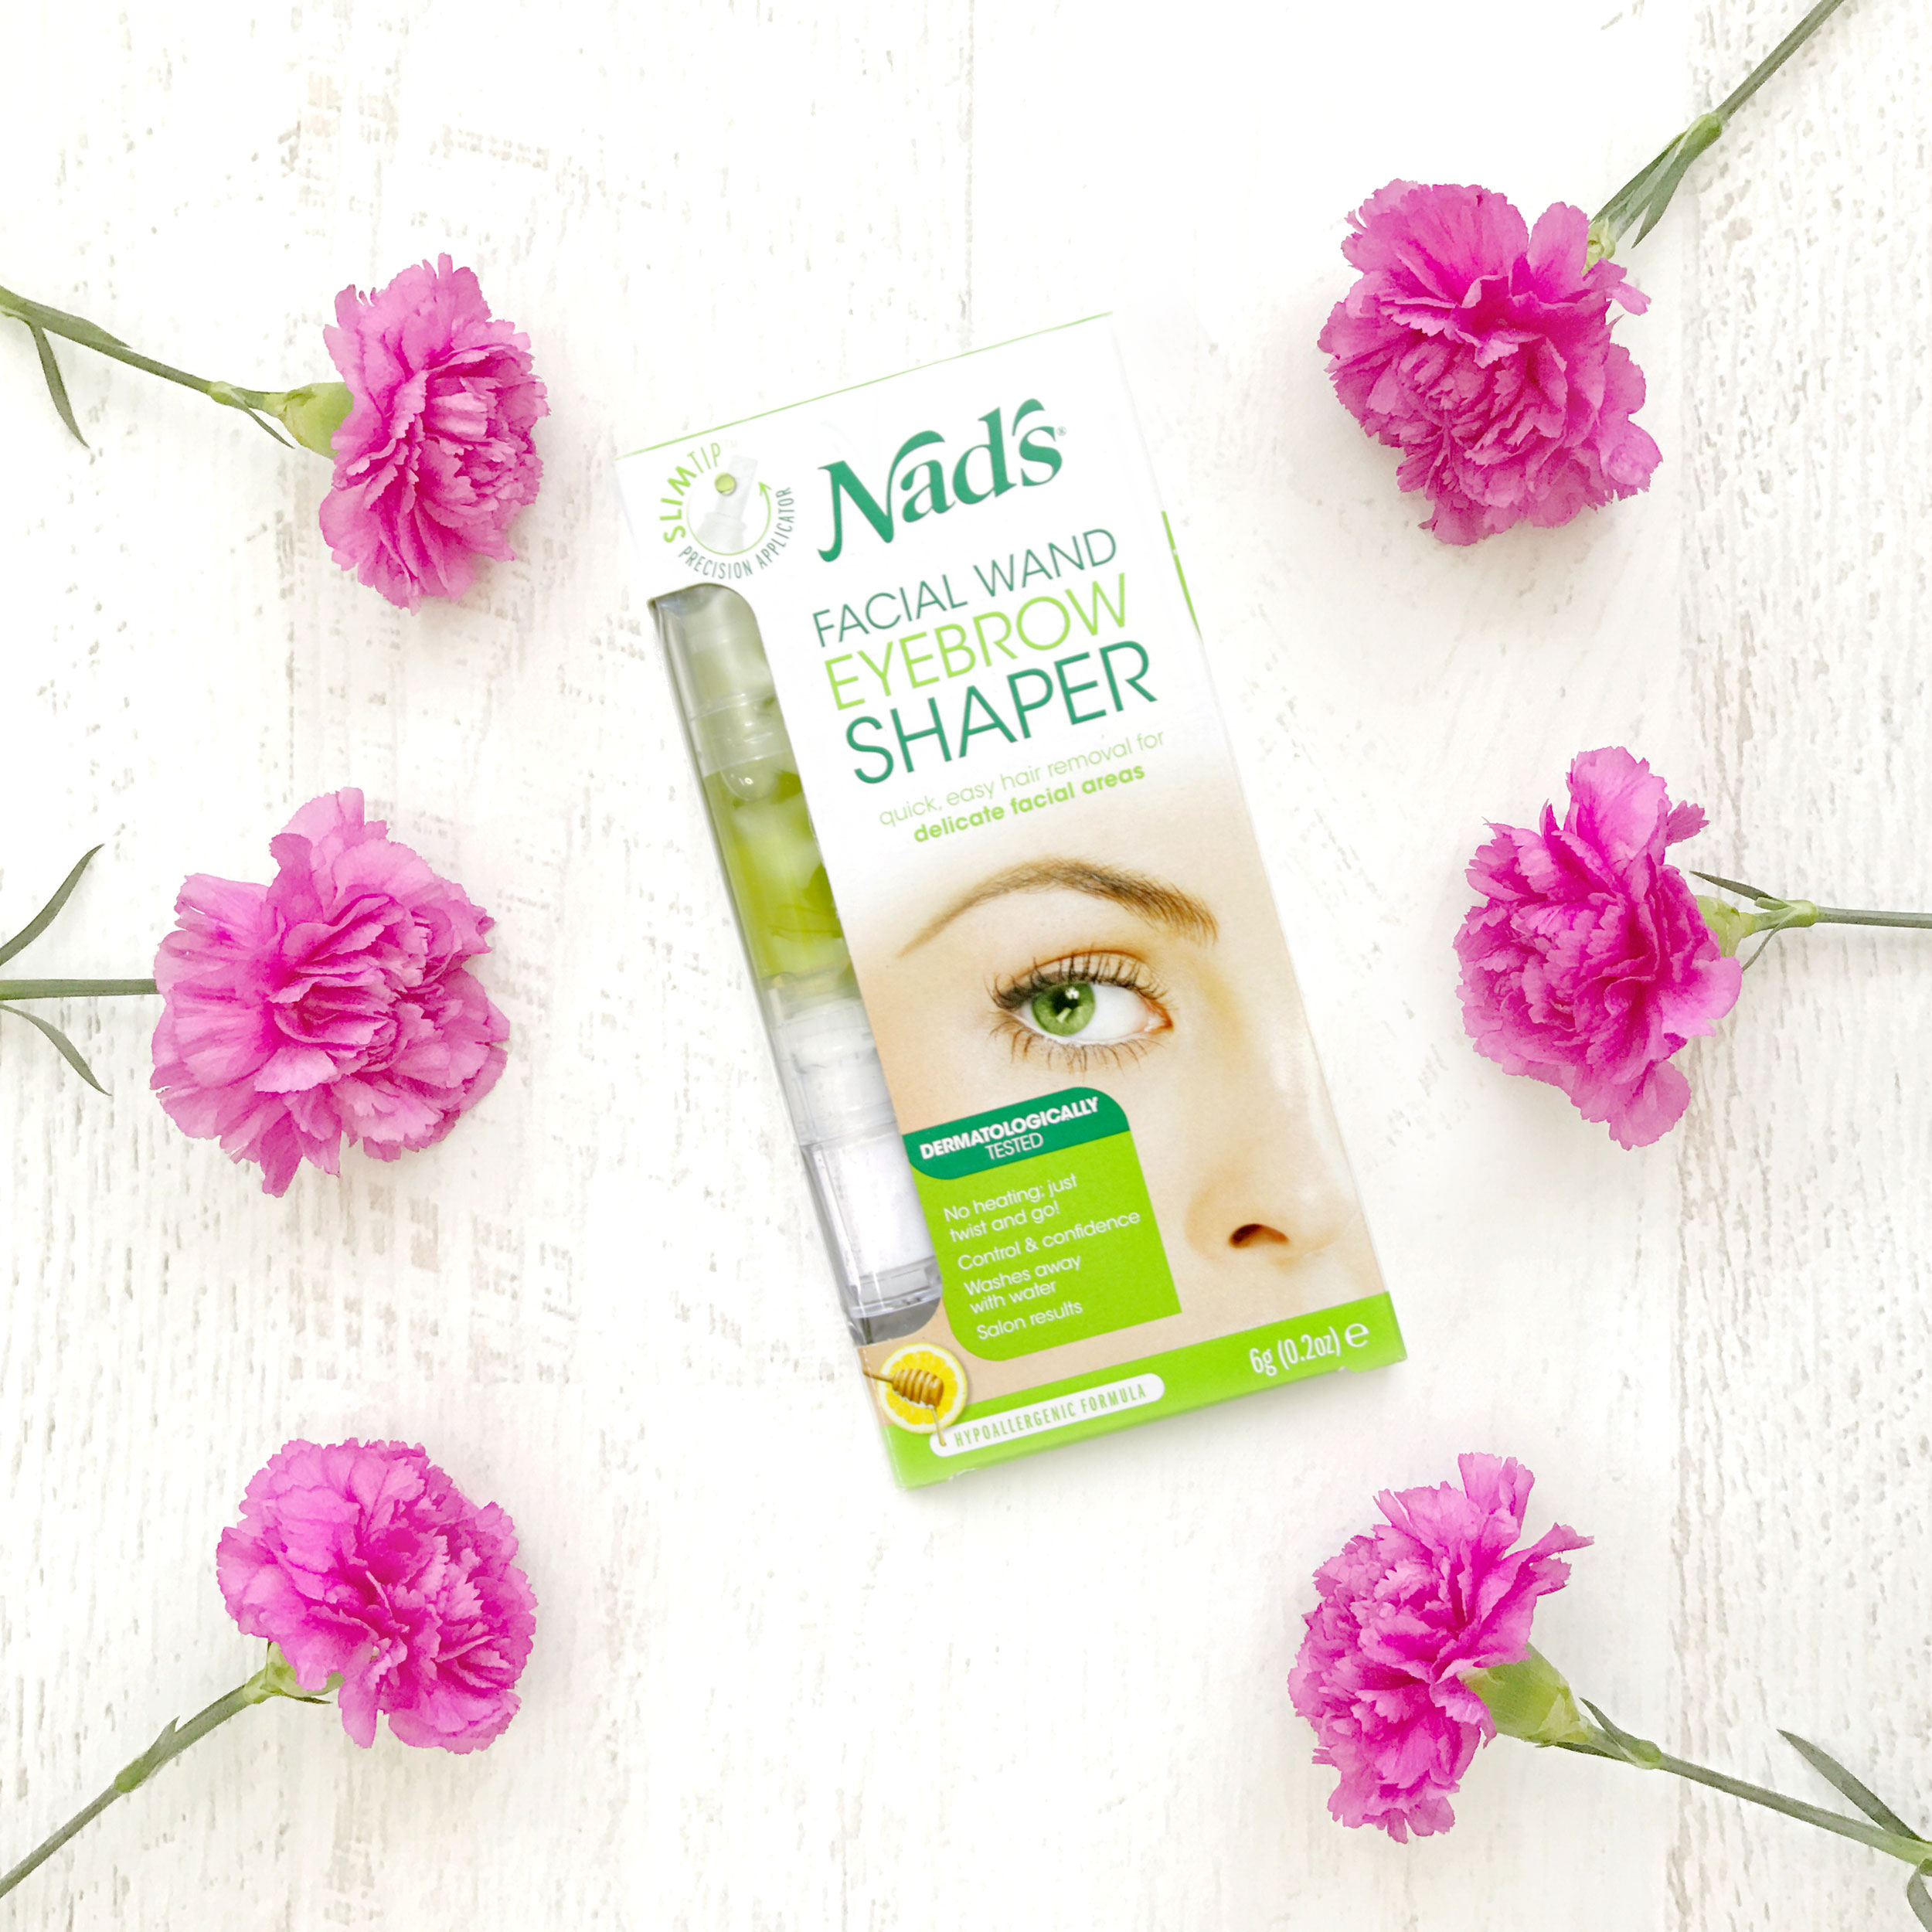 Quick And Easy At Home Brow Shaping With Nads Eyebrow Shaper